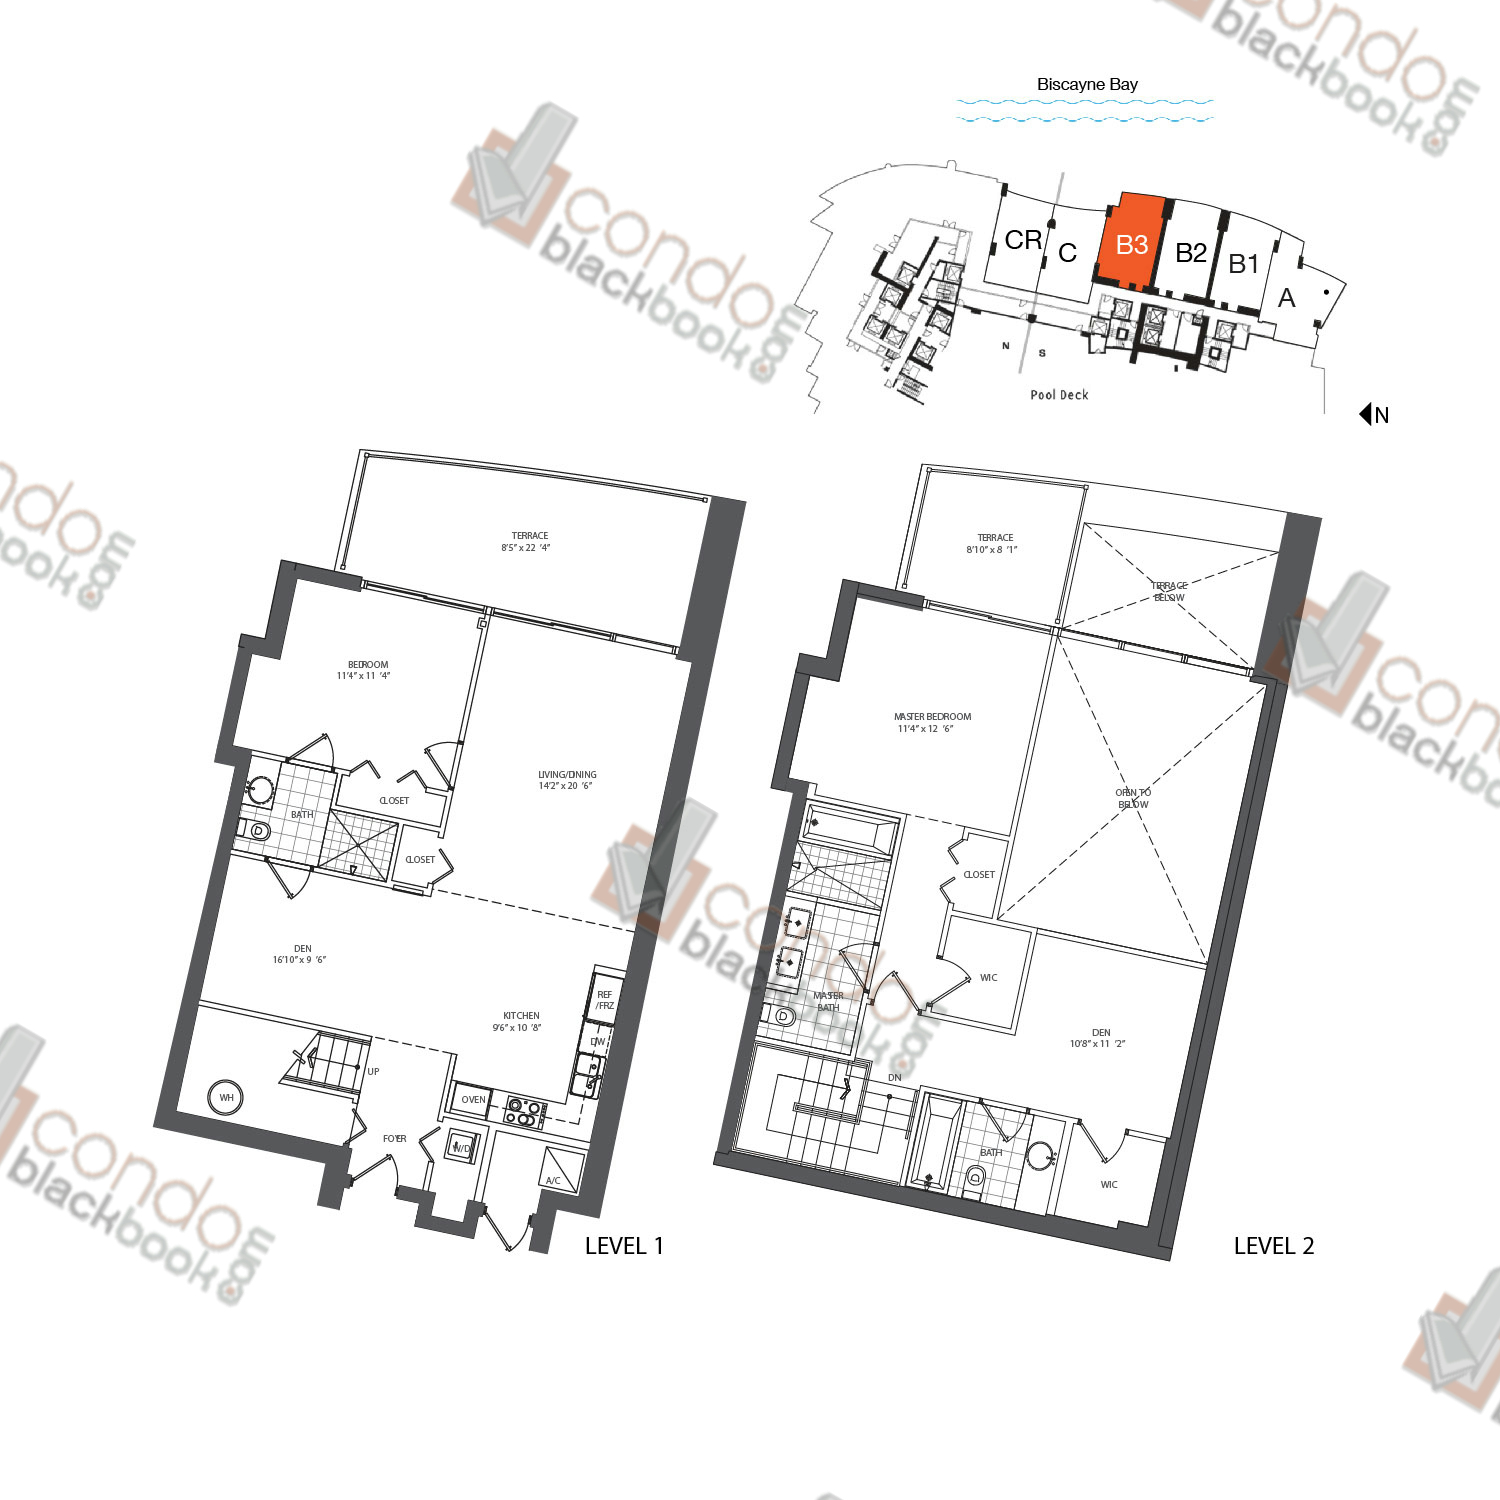 Floor plan for 900 Biscayne Bay Downtown Miami Miami, model TH B3, line 07, 2/3+DEN bedrooms, 1,642 sq ft